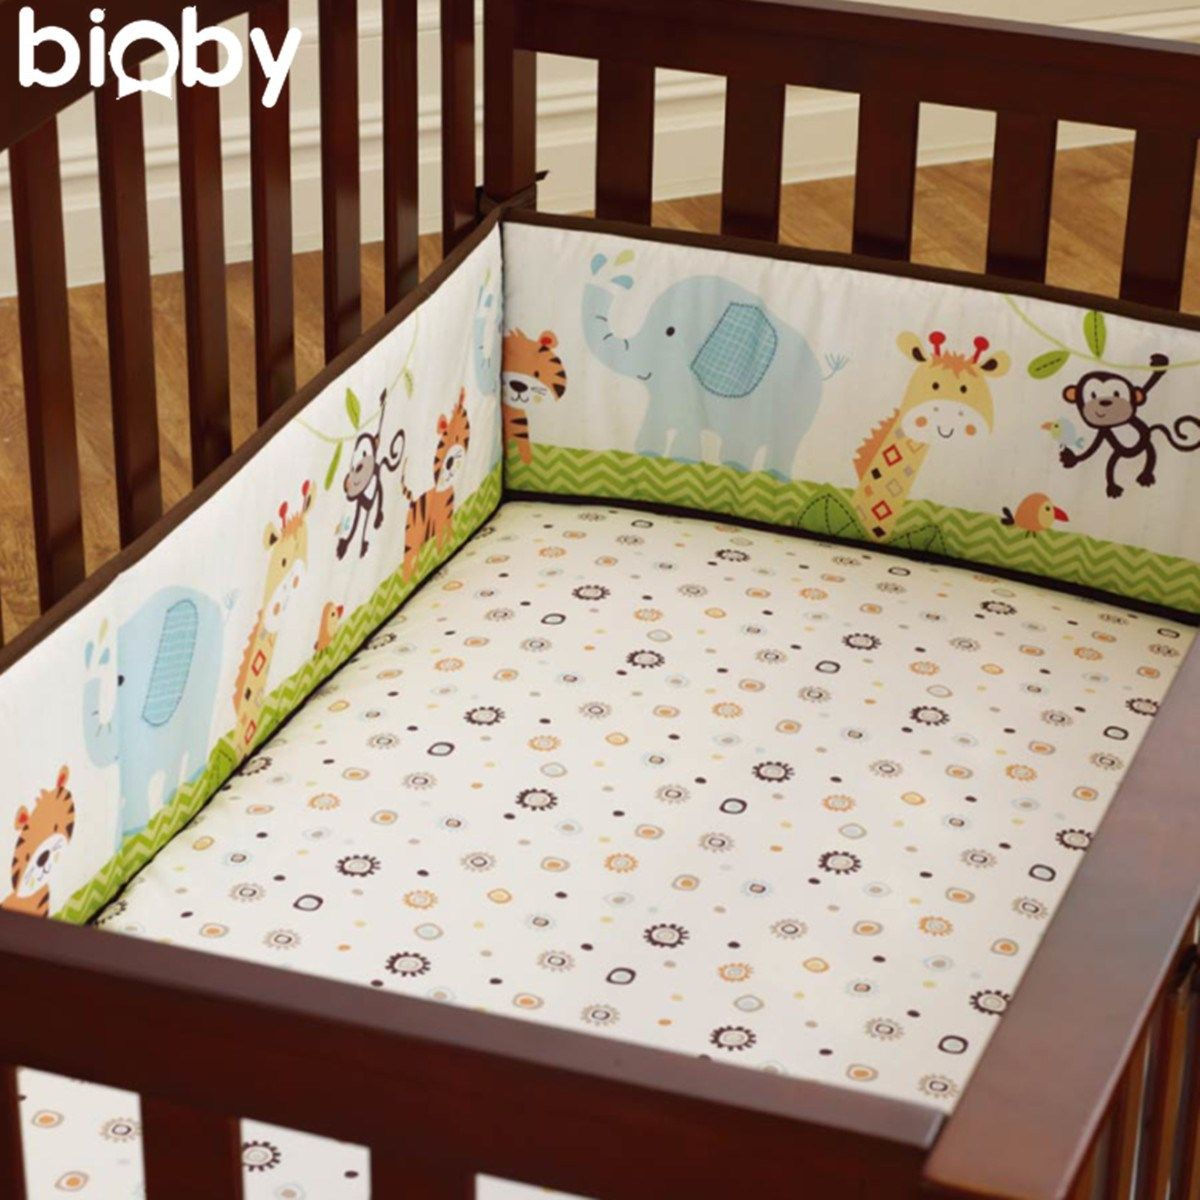 Large 4pcs Cotton Baby Infant Cot Crib Bumper Safety Protector Toddler Nursery Bedding Set Infantile Cushion P Baby Cot Bumper Nursery Bedding Sets Crib Bumper